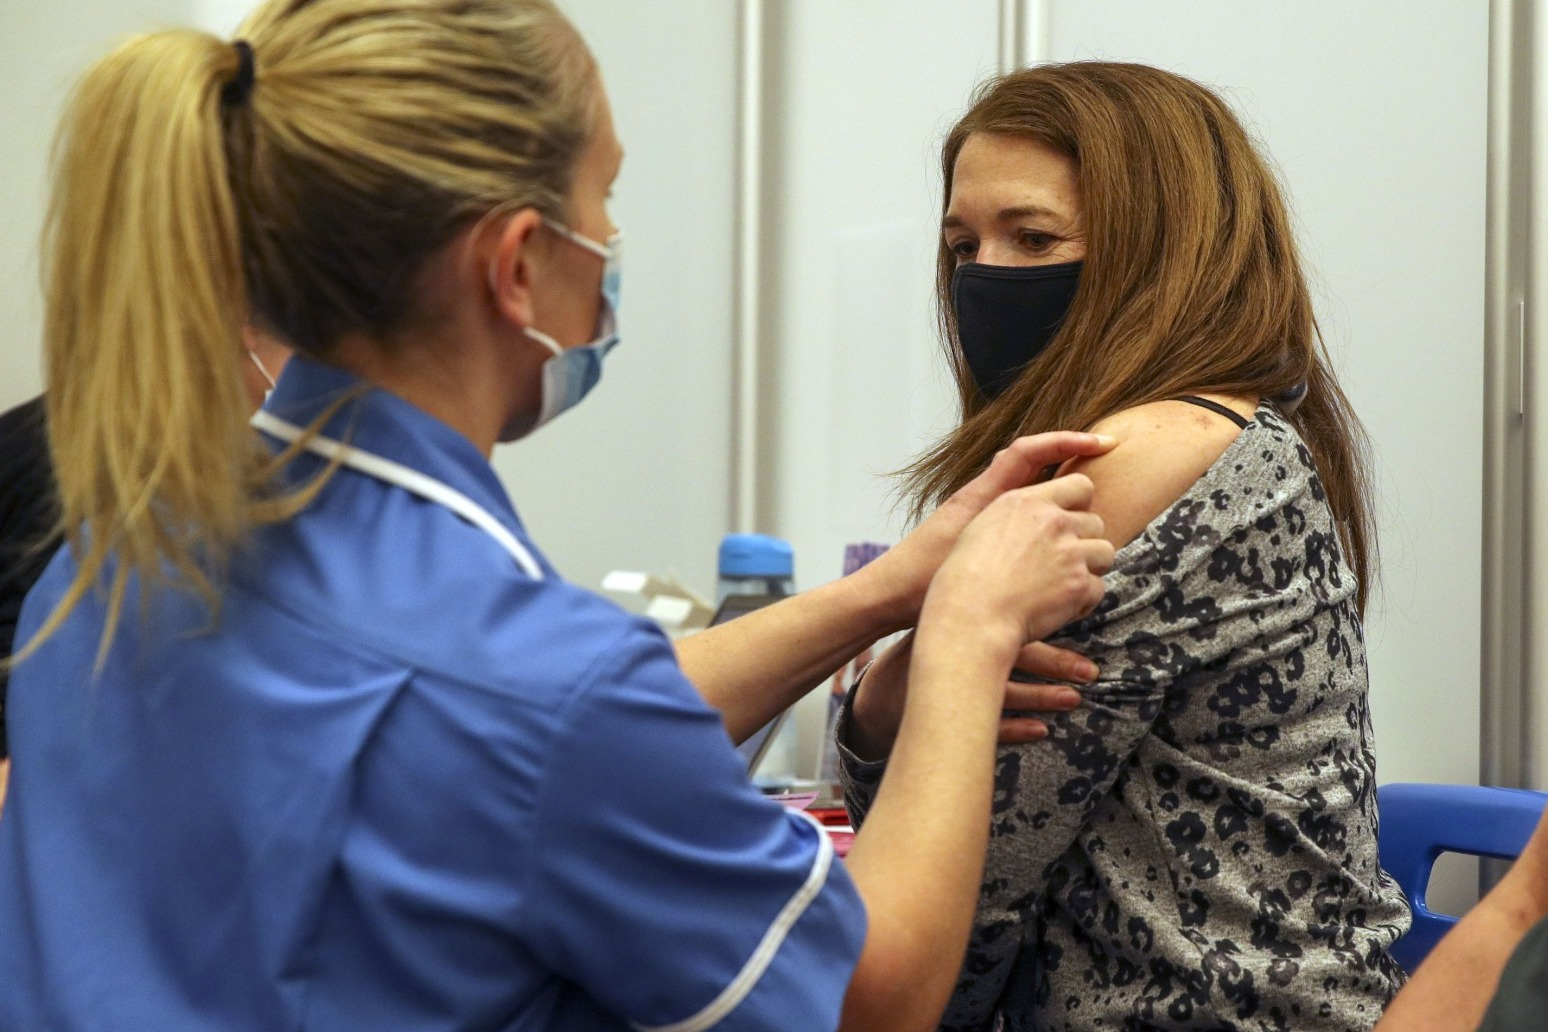 Covid vaccine rollout in England extends to anyone aged 25 or over